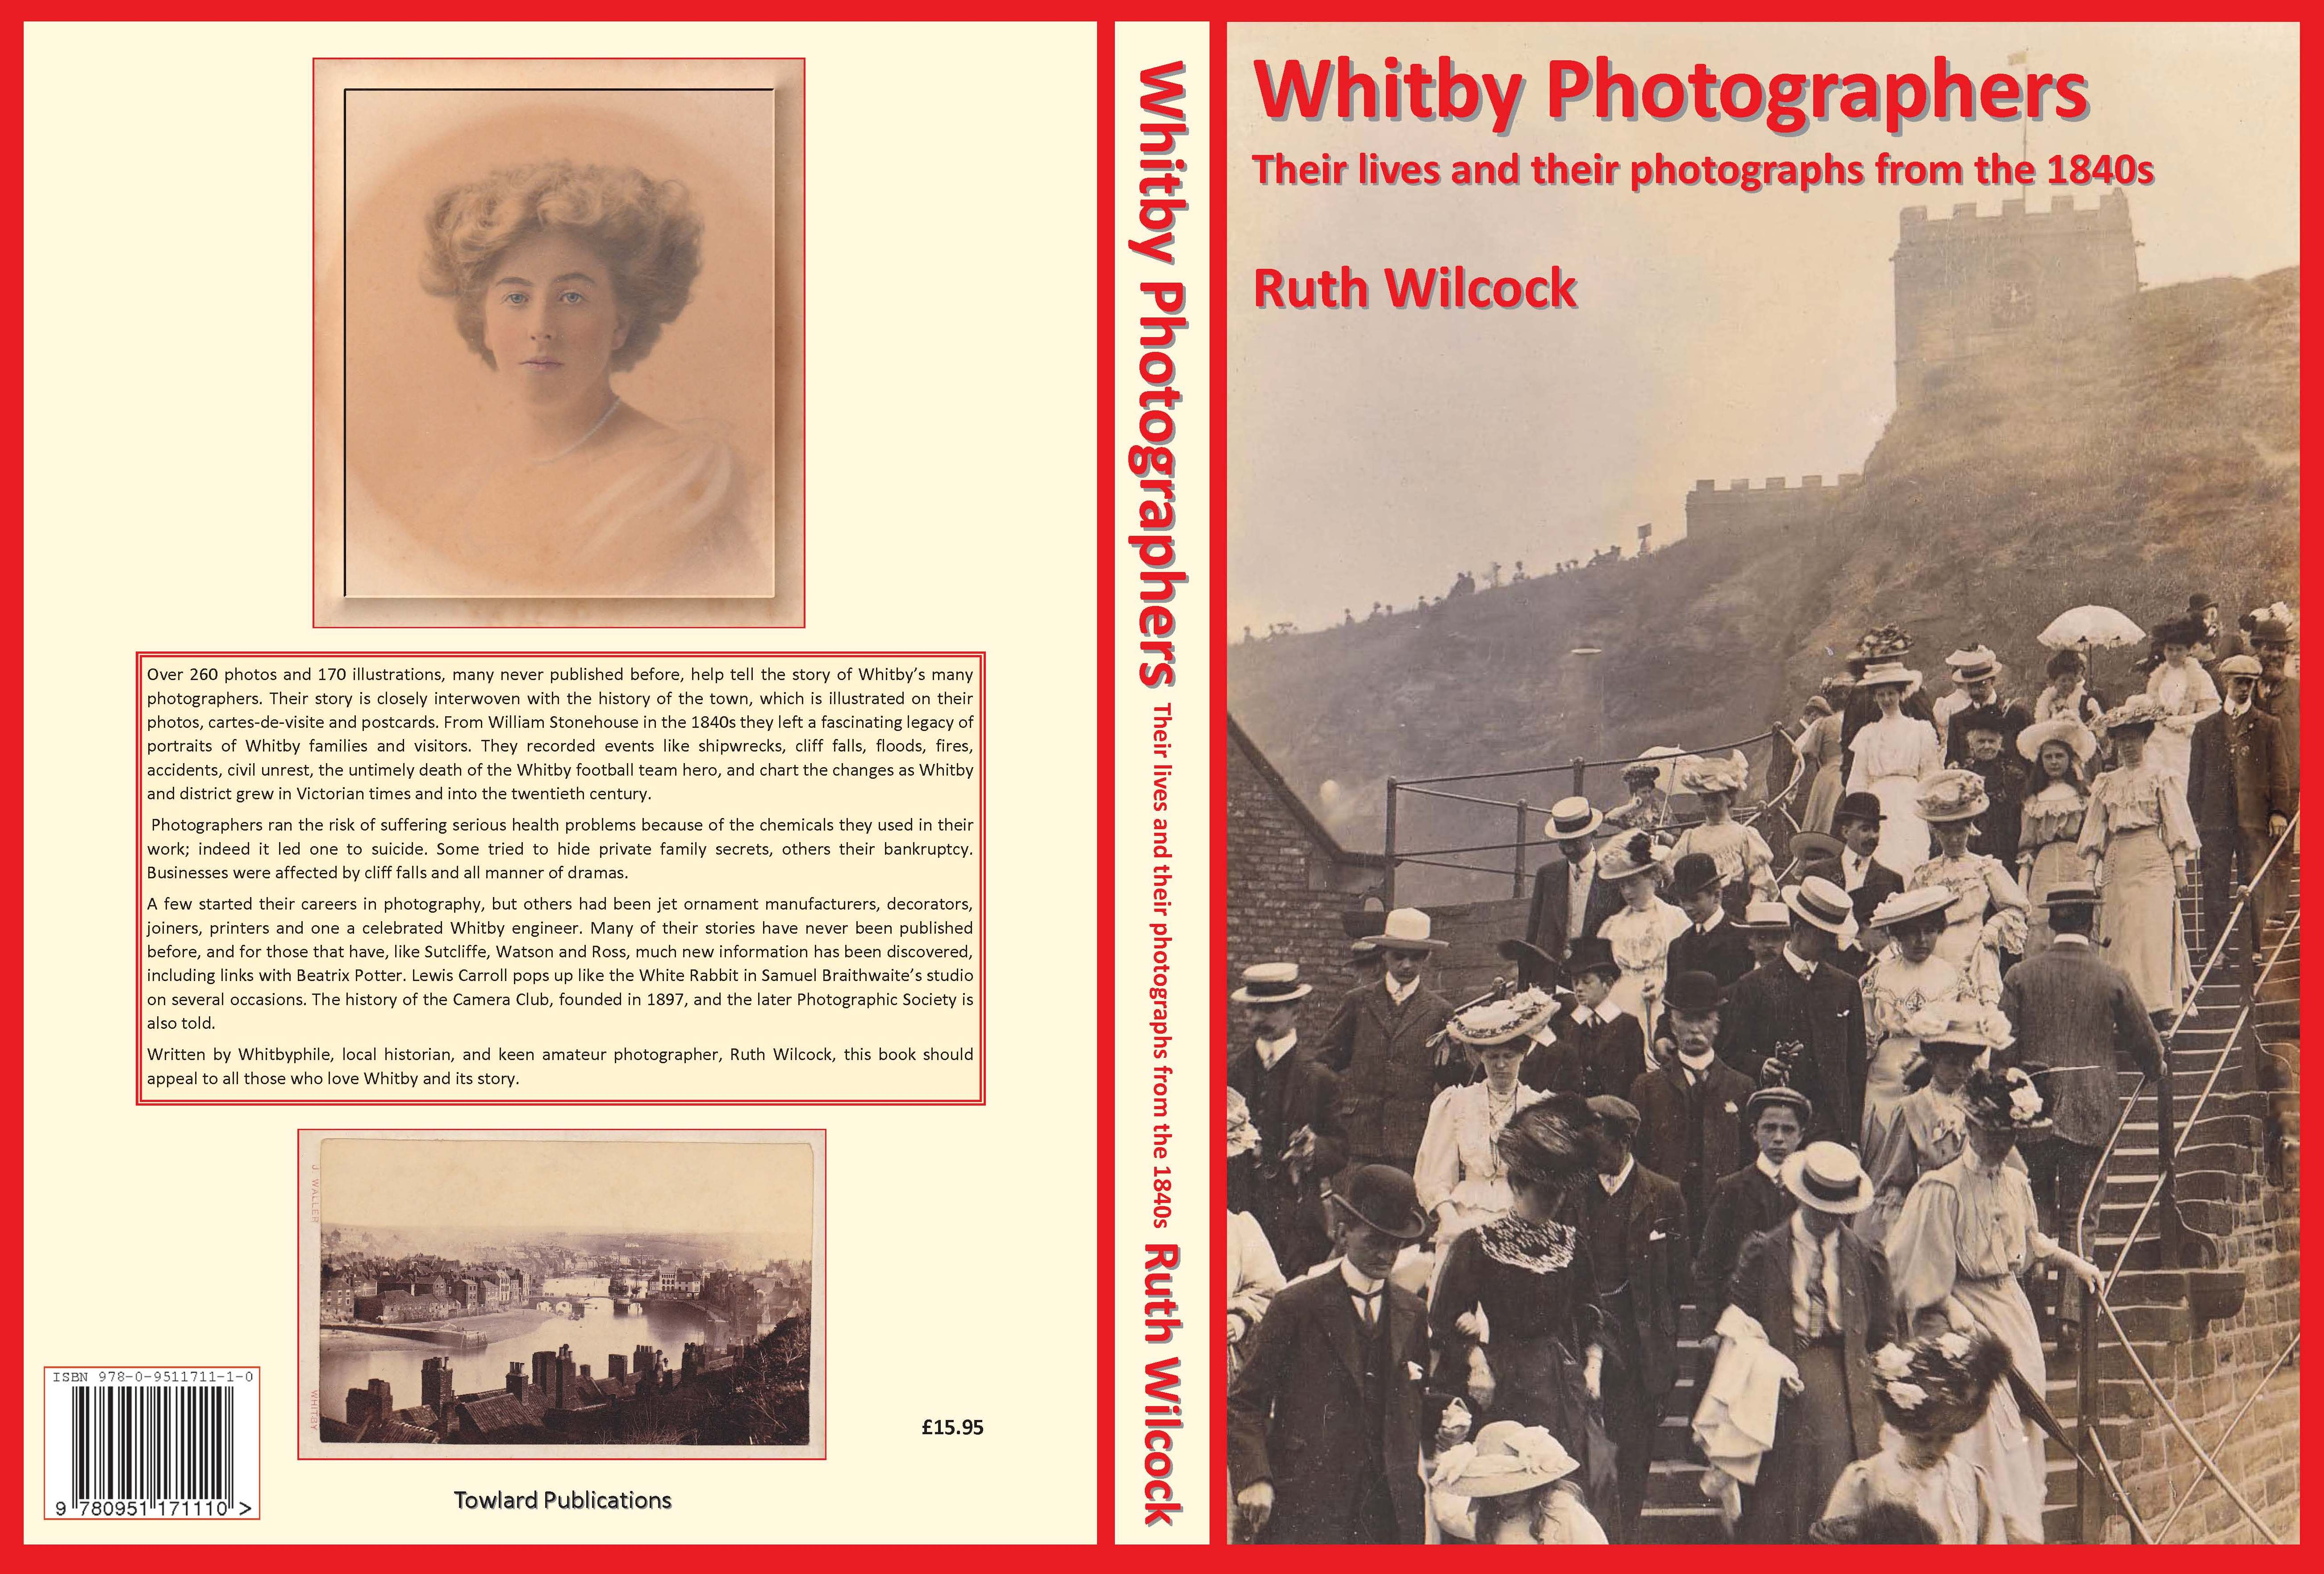 Image of book cover for Ruth Wilcock's Whitby photographers.